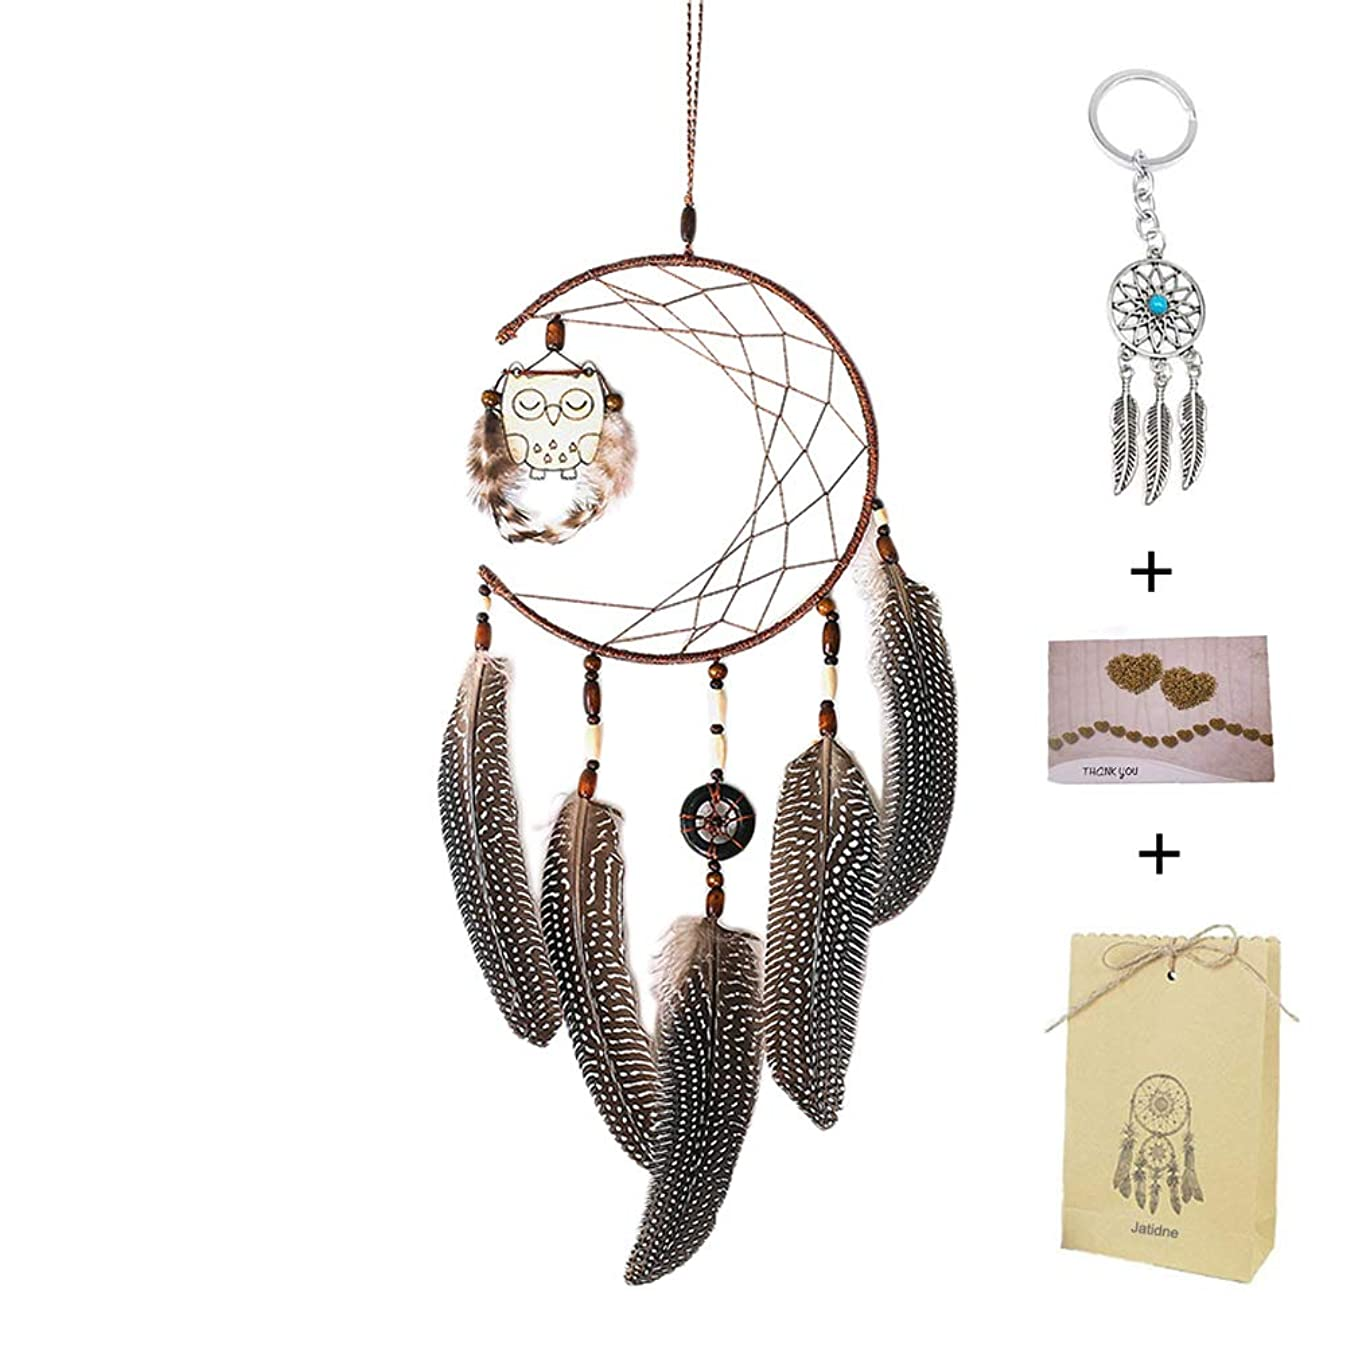 FIGEN Dream Catcher Handmade Traditional Feather Wall Hanging Home Decoration Decor Ornament Craft (A)